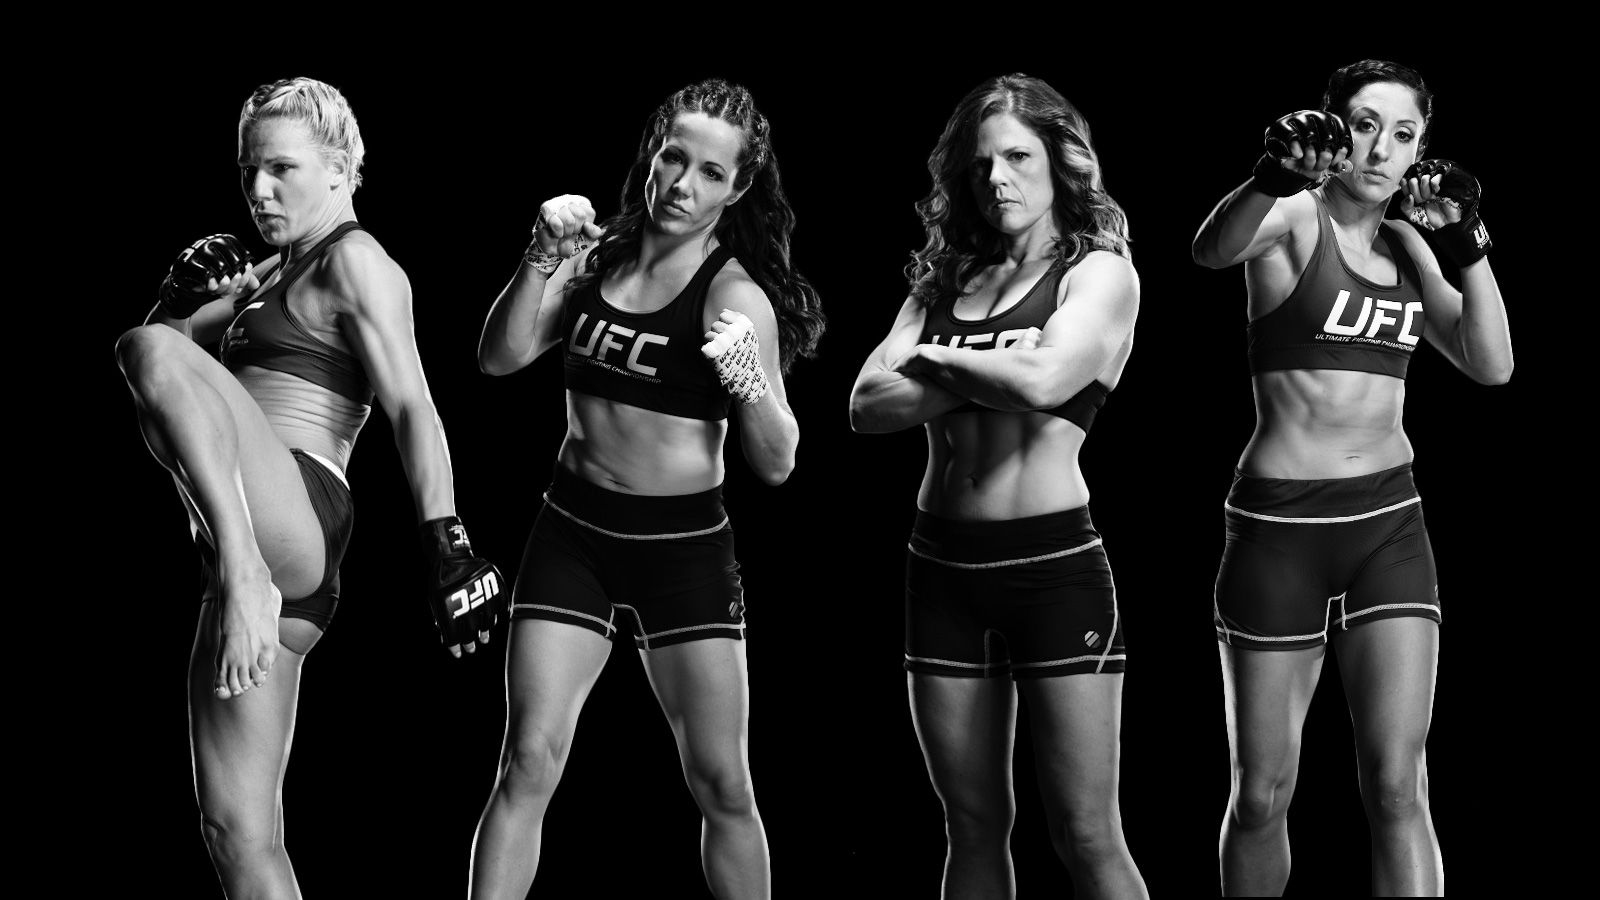 The Ultimate Fighter': From tragedy to triumph www